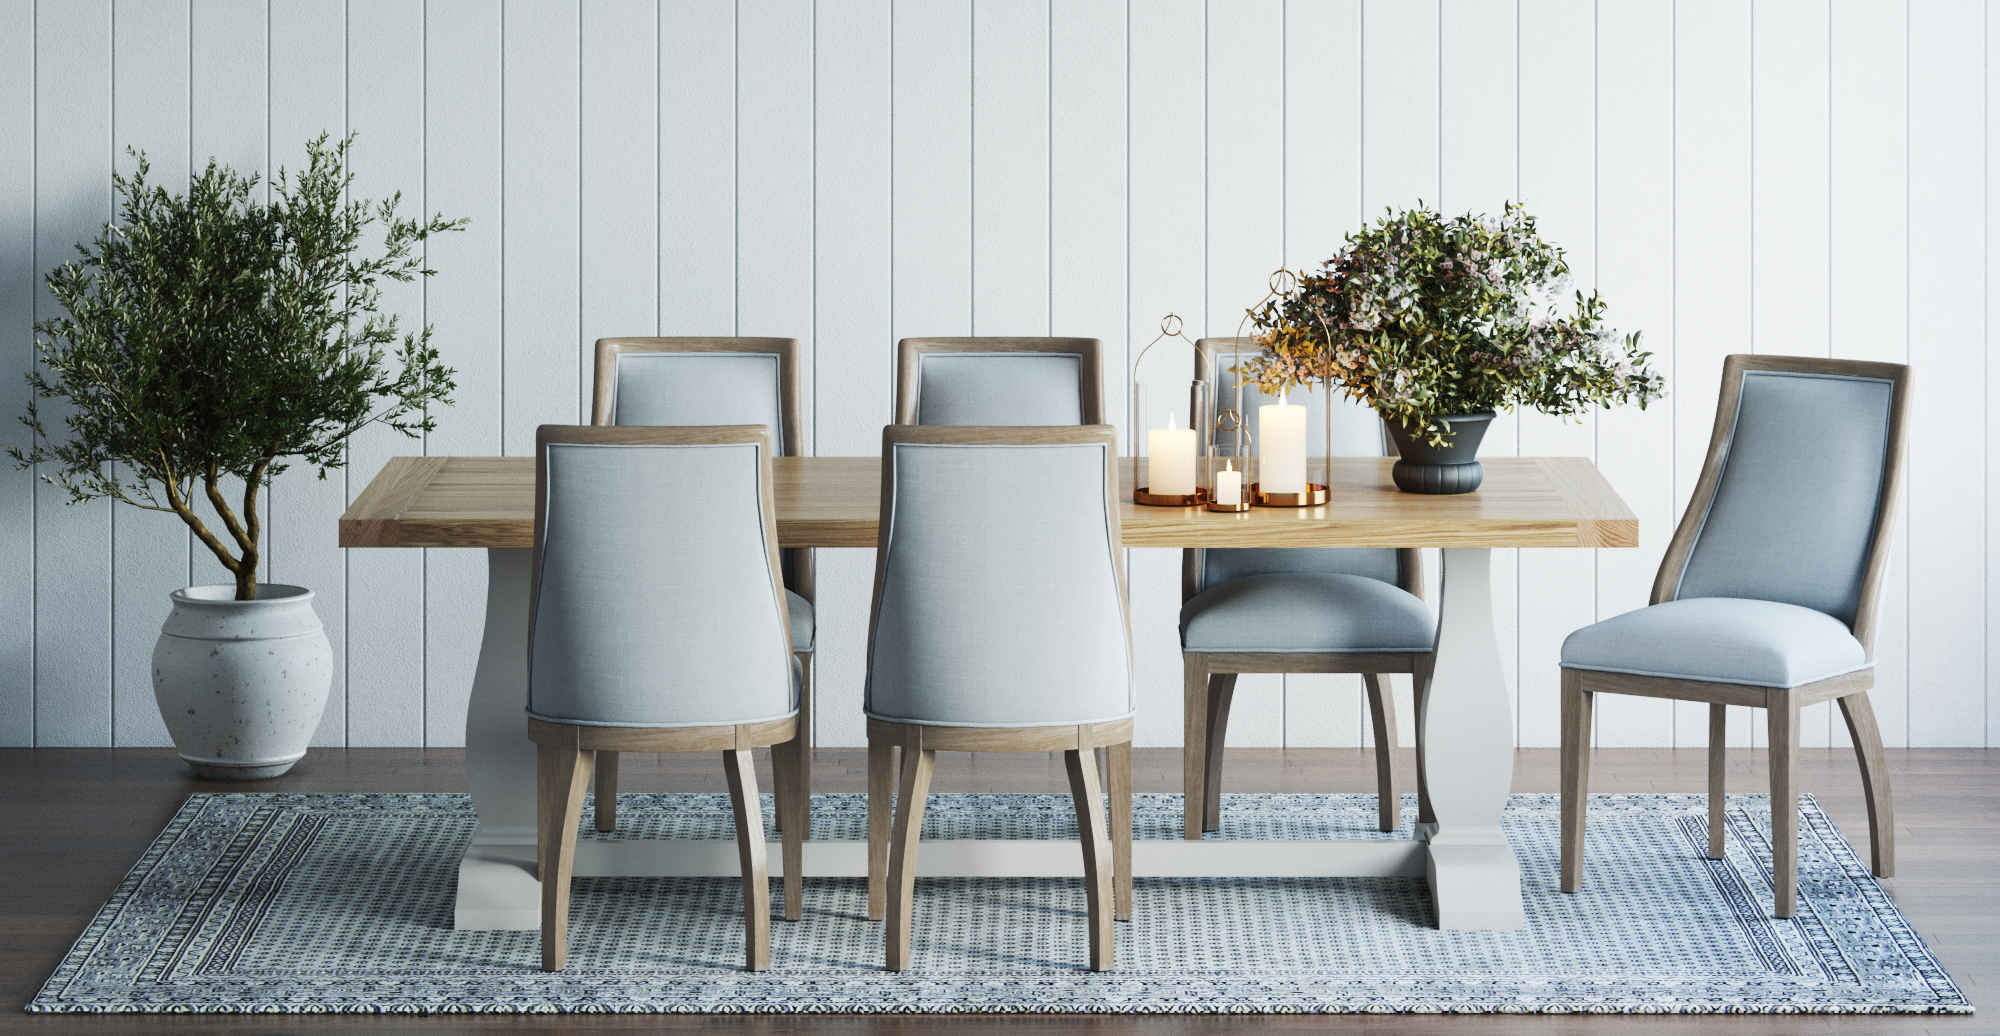 Brosa Normandy Dining Chair styled in classic traditional dining room